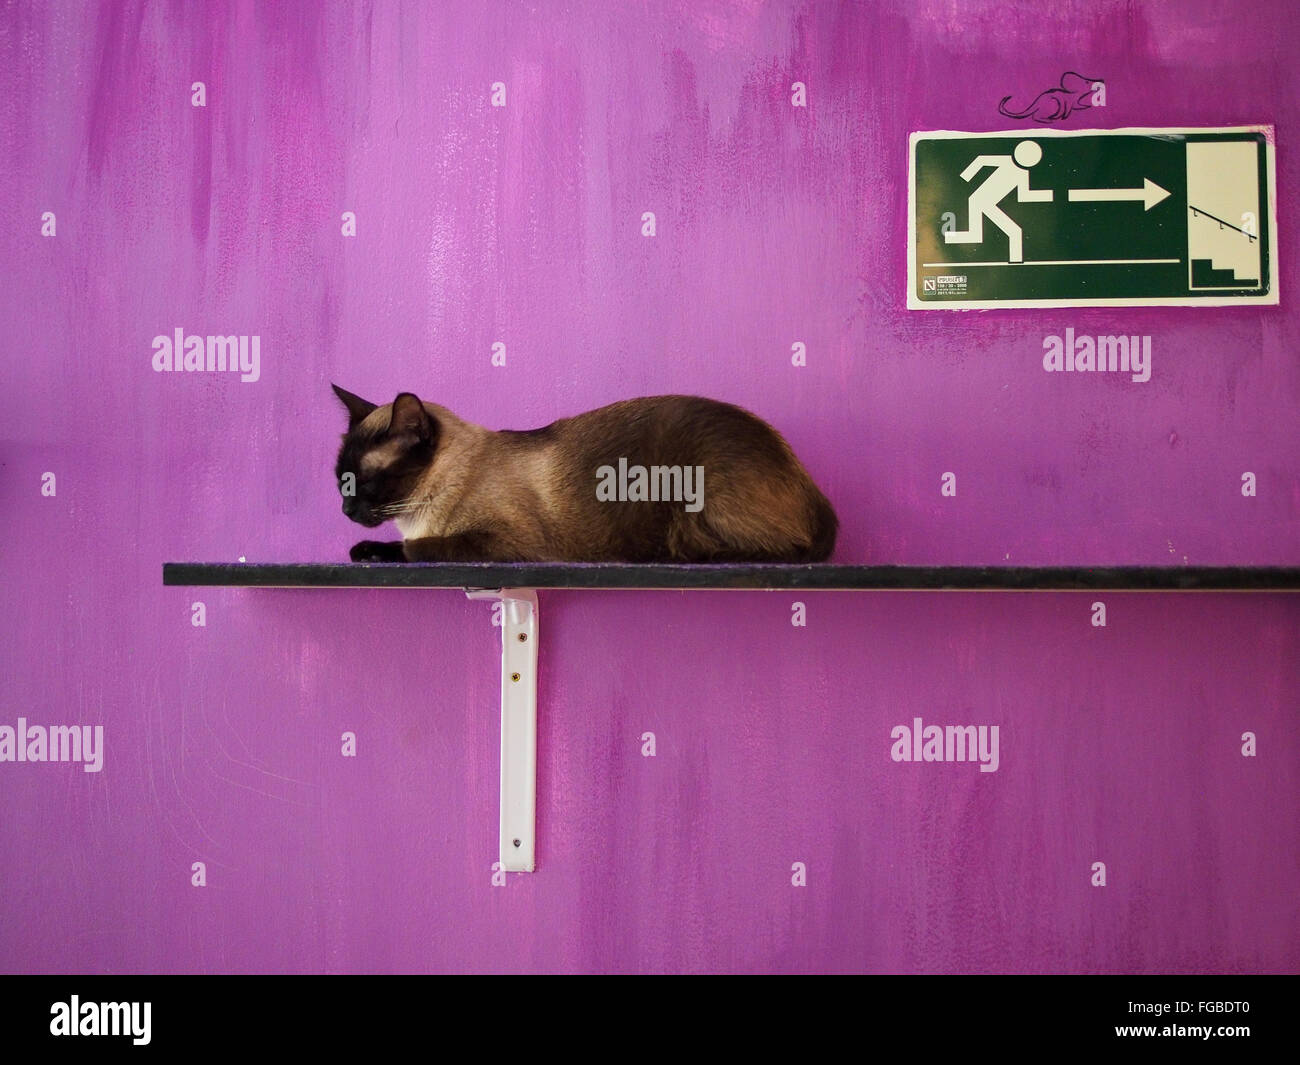 Cat Resting On Plank Against Purple Wall - Stock Image